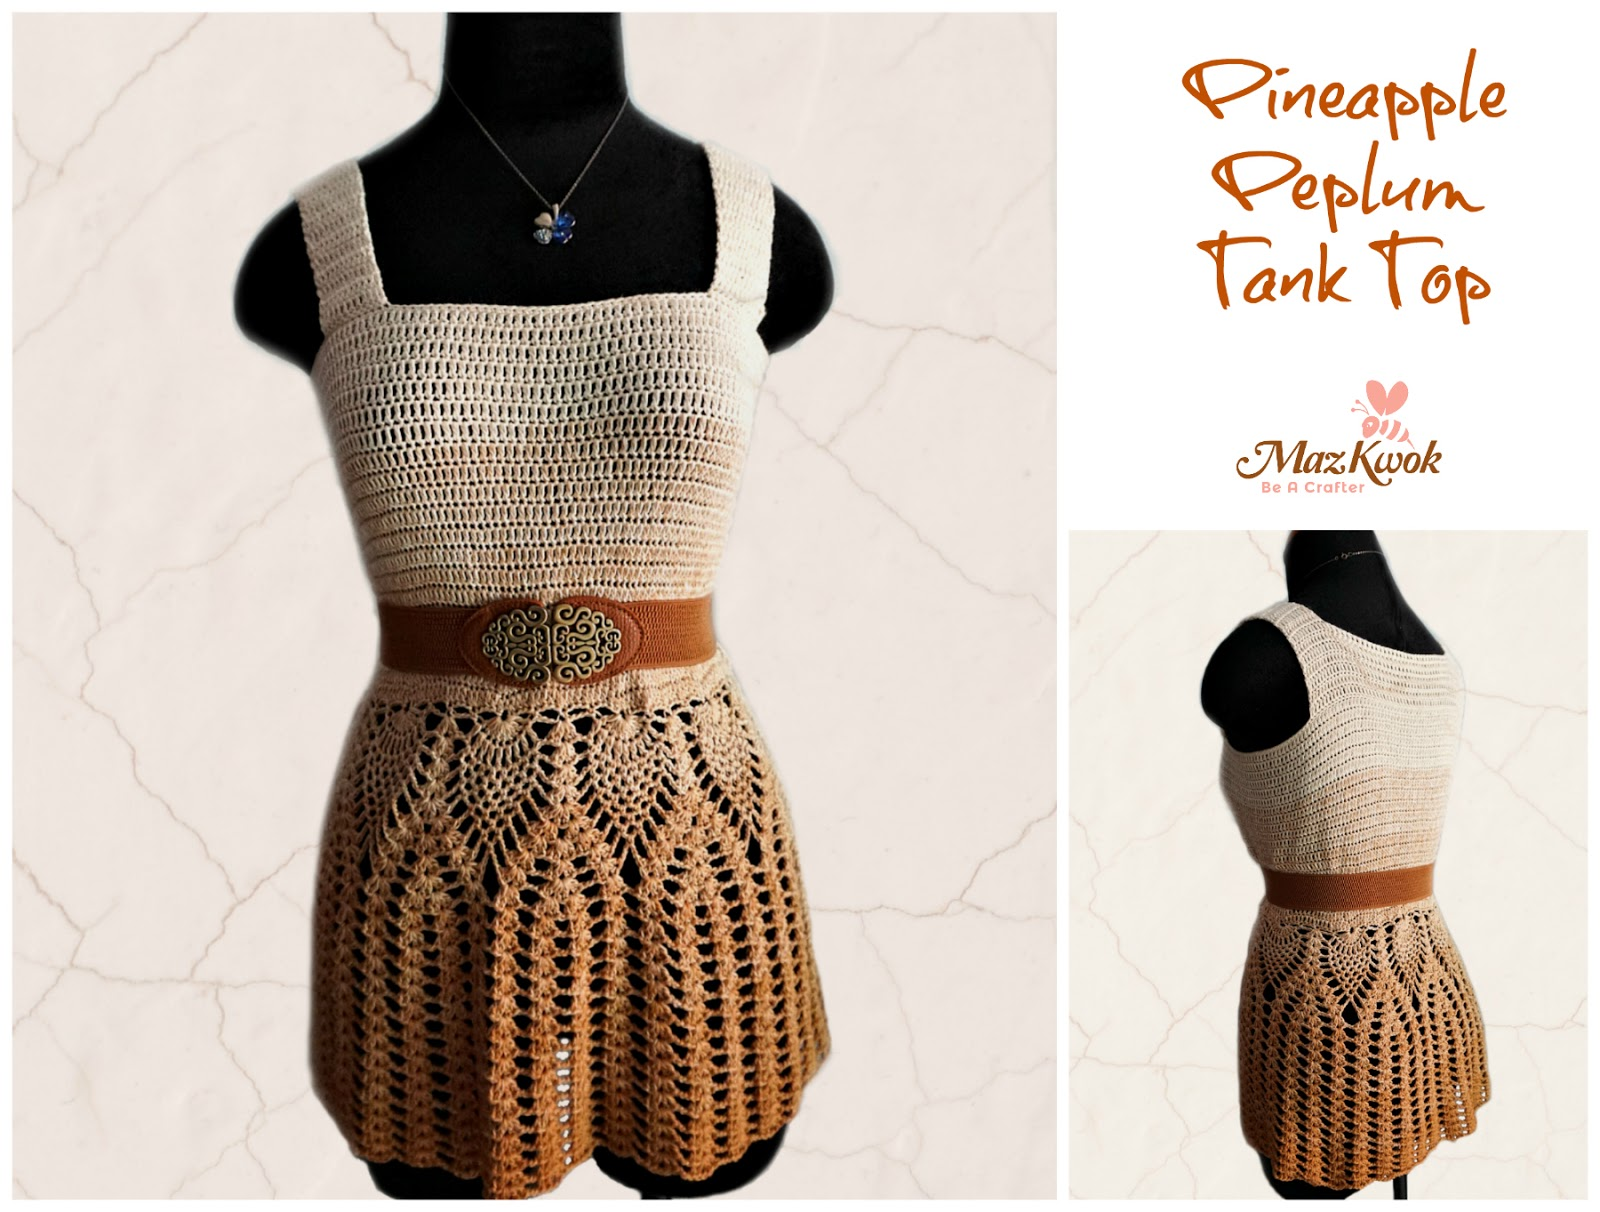 Pineapple Peplum Tank Top Free Crochet Pattern